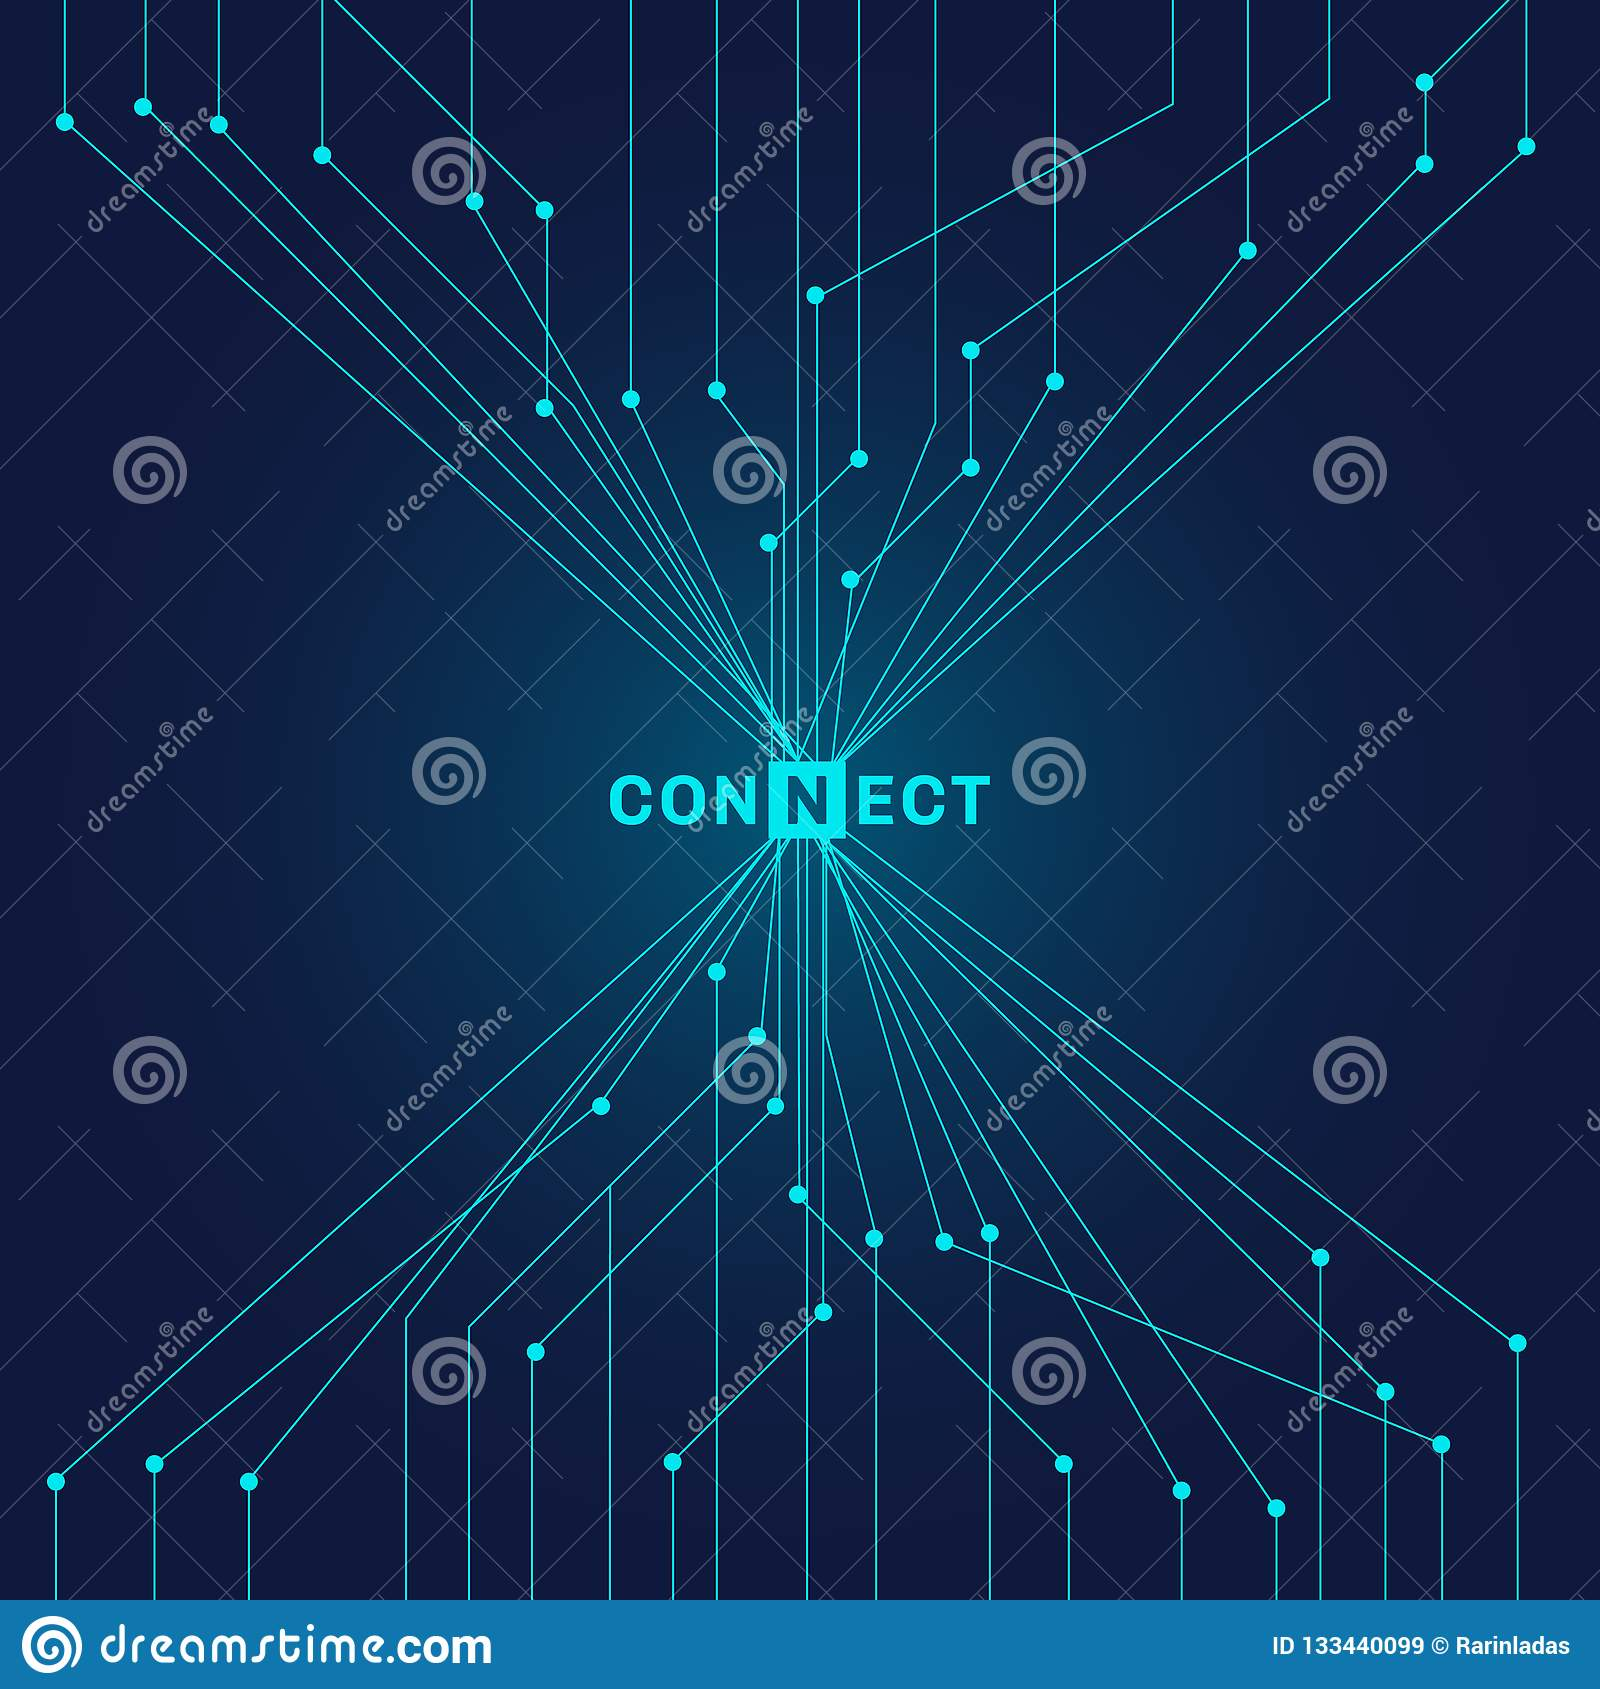 Abstract futuristic blue circuit board on dark background digital technology connecting concept